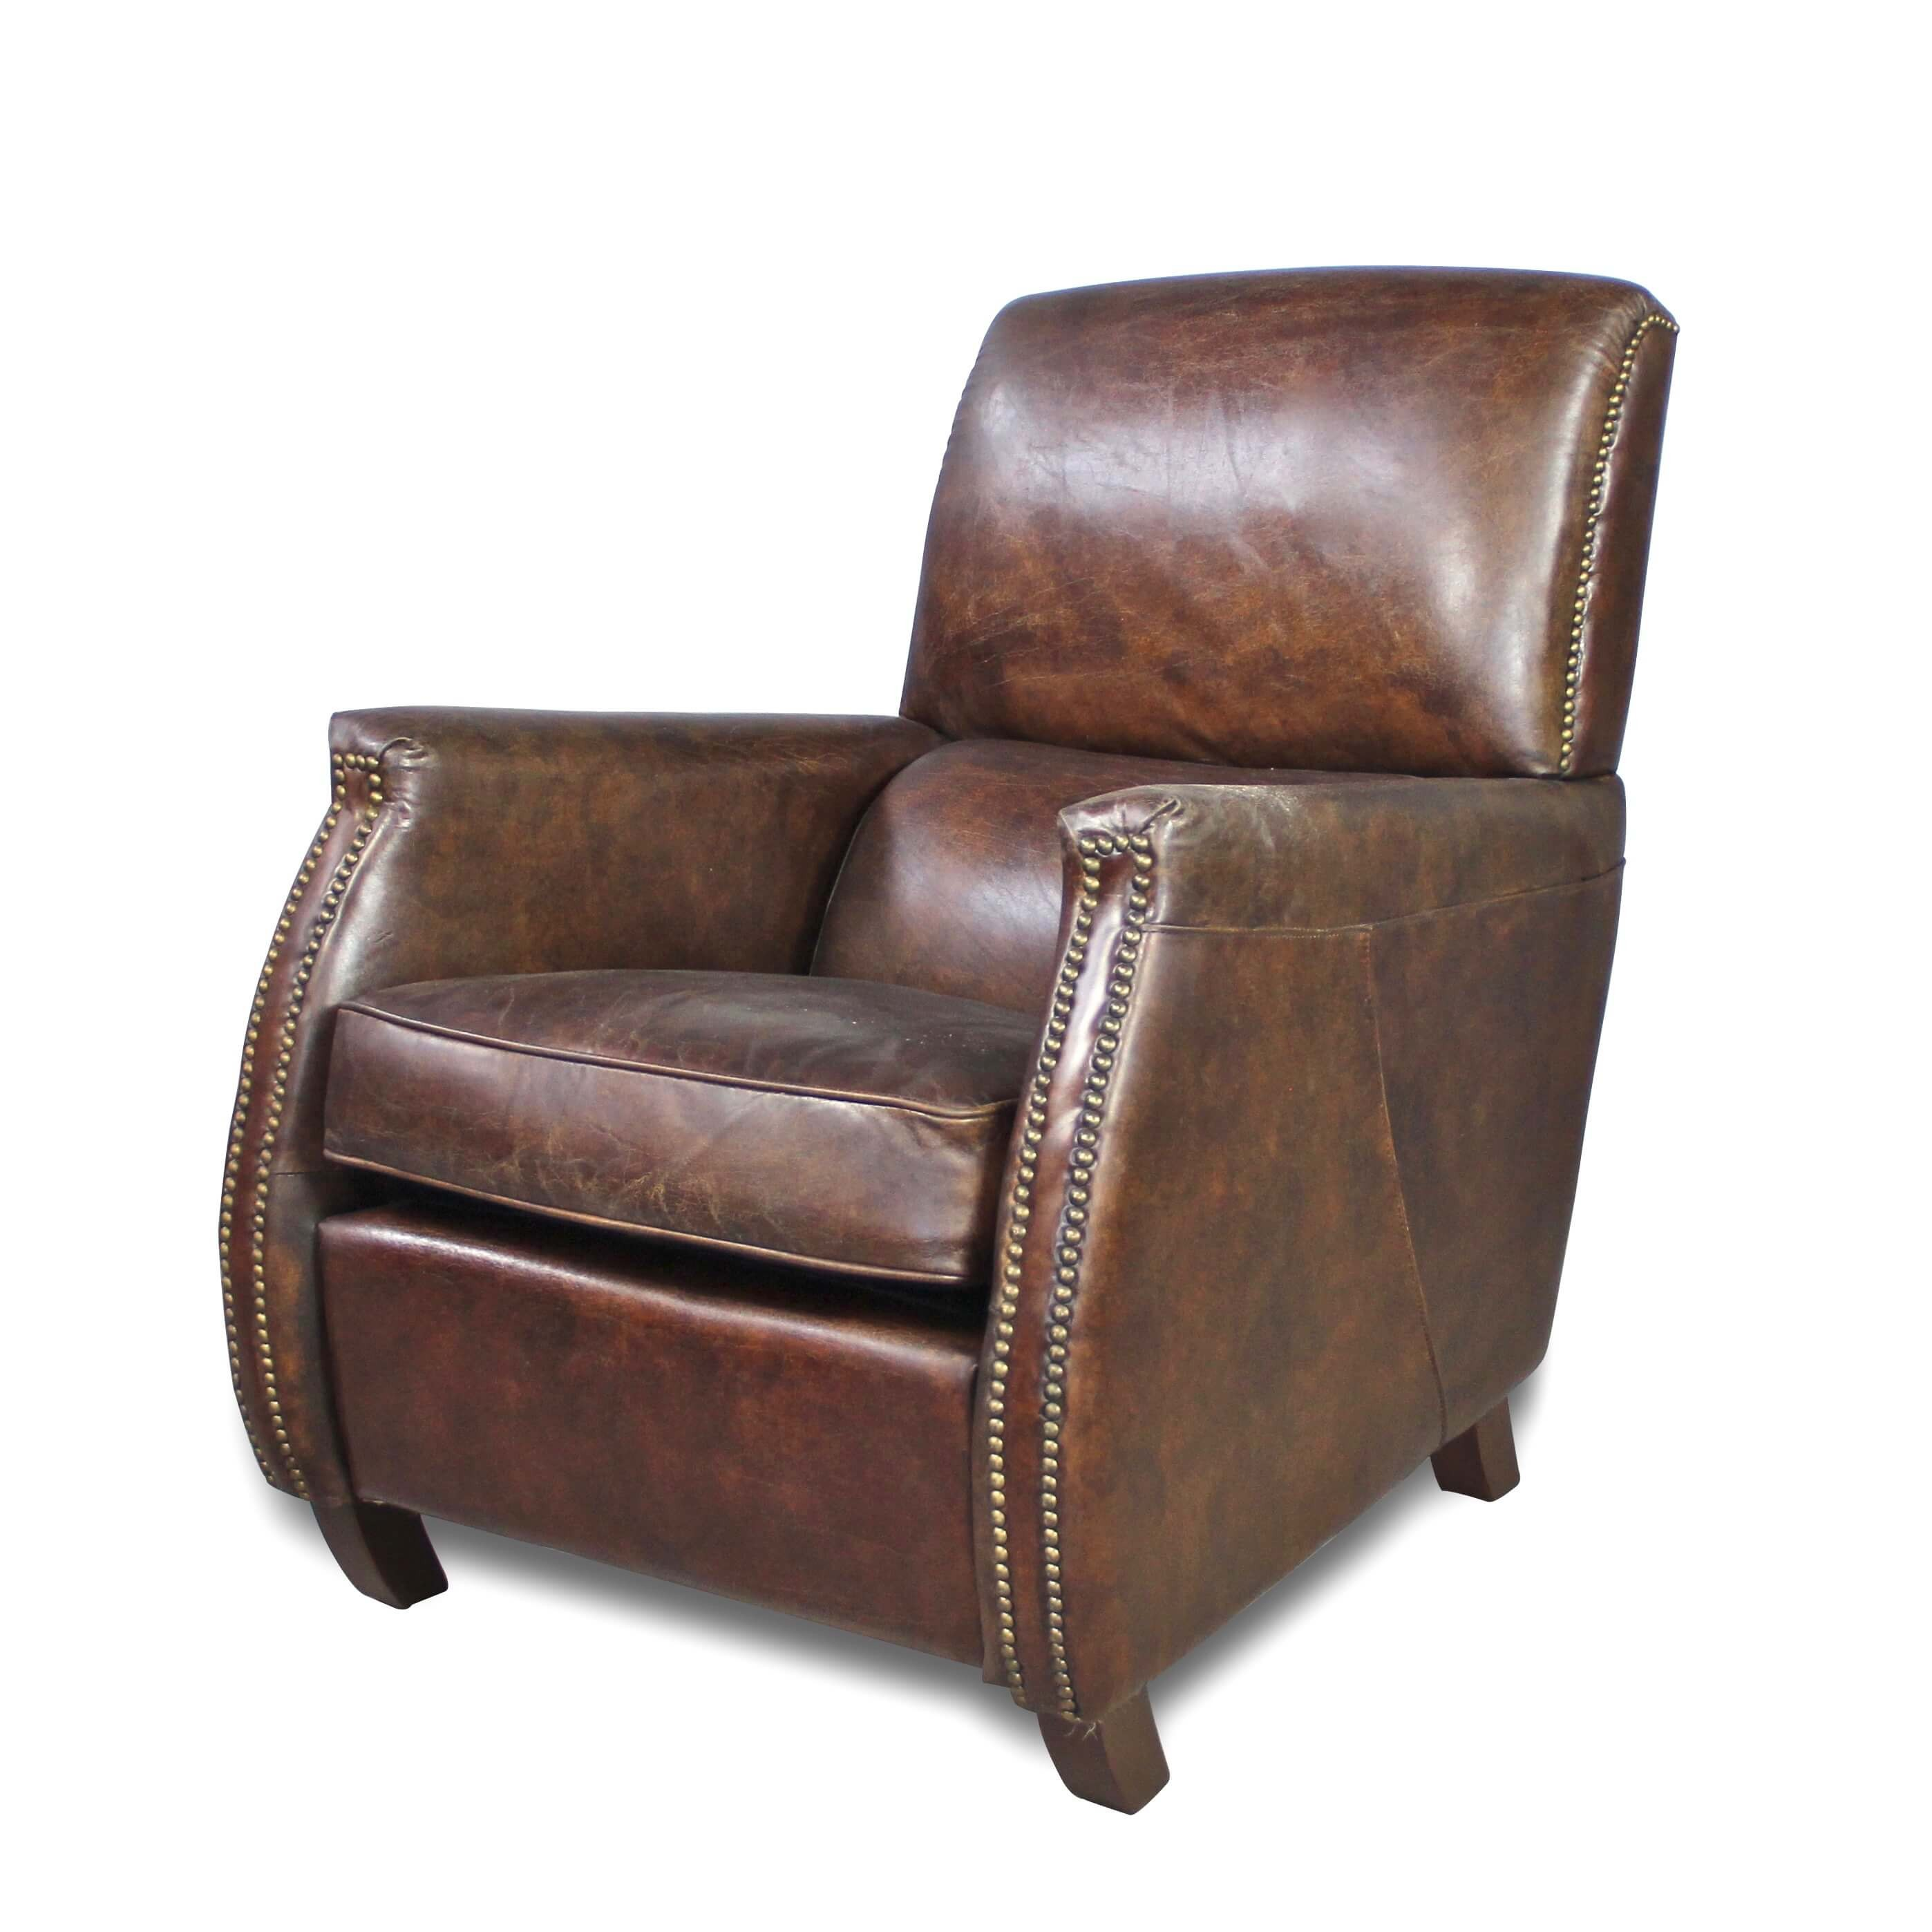 Canape Club Cuir Marron Fauteuil Confortable Club Vintage En Cuir Patiné Couleur Marron Patiné